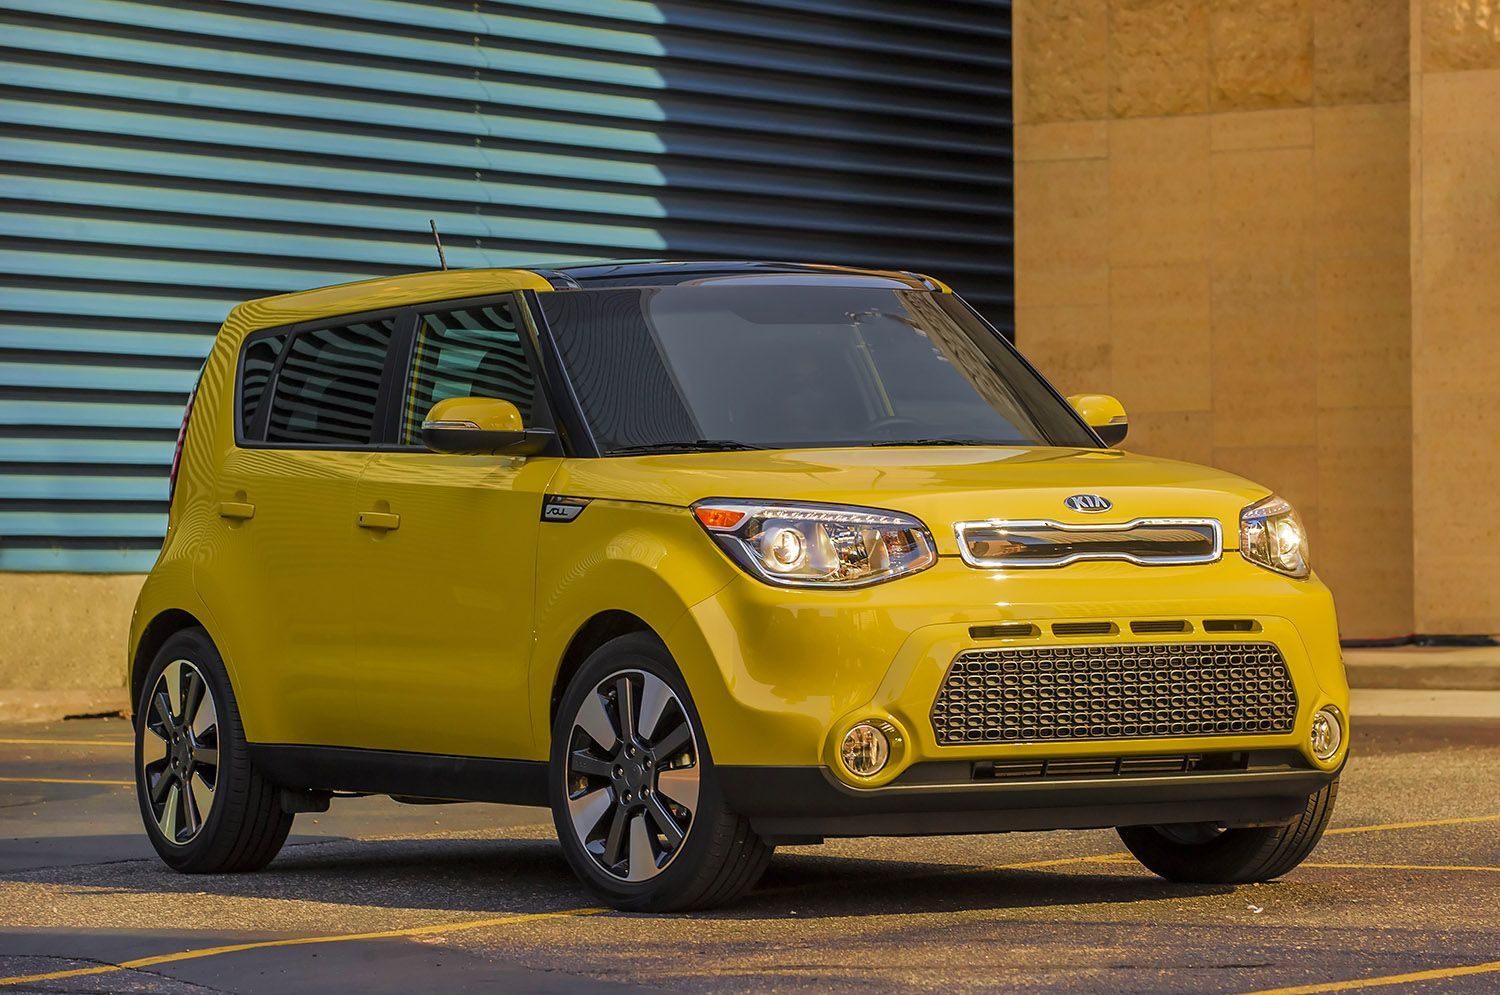 The Kia Soul is totally transformed, fun to drive, and one